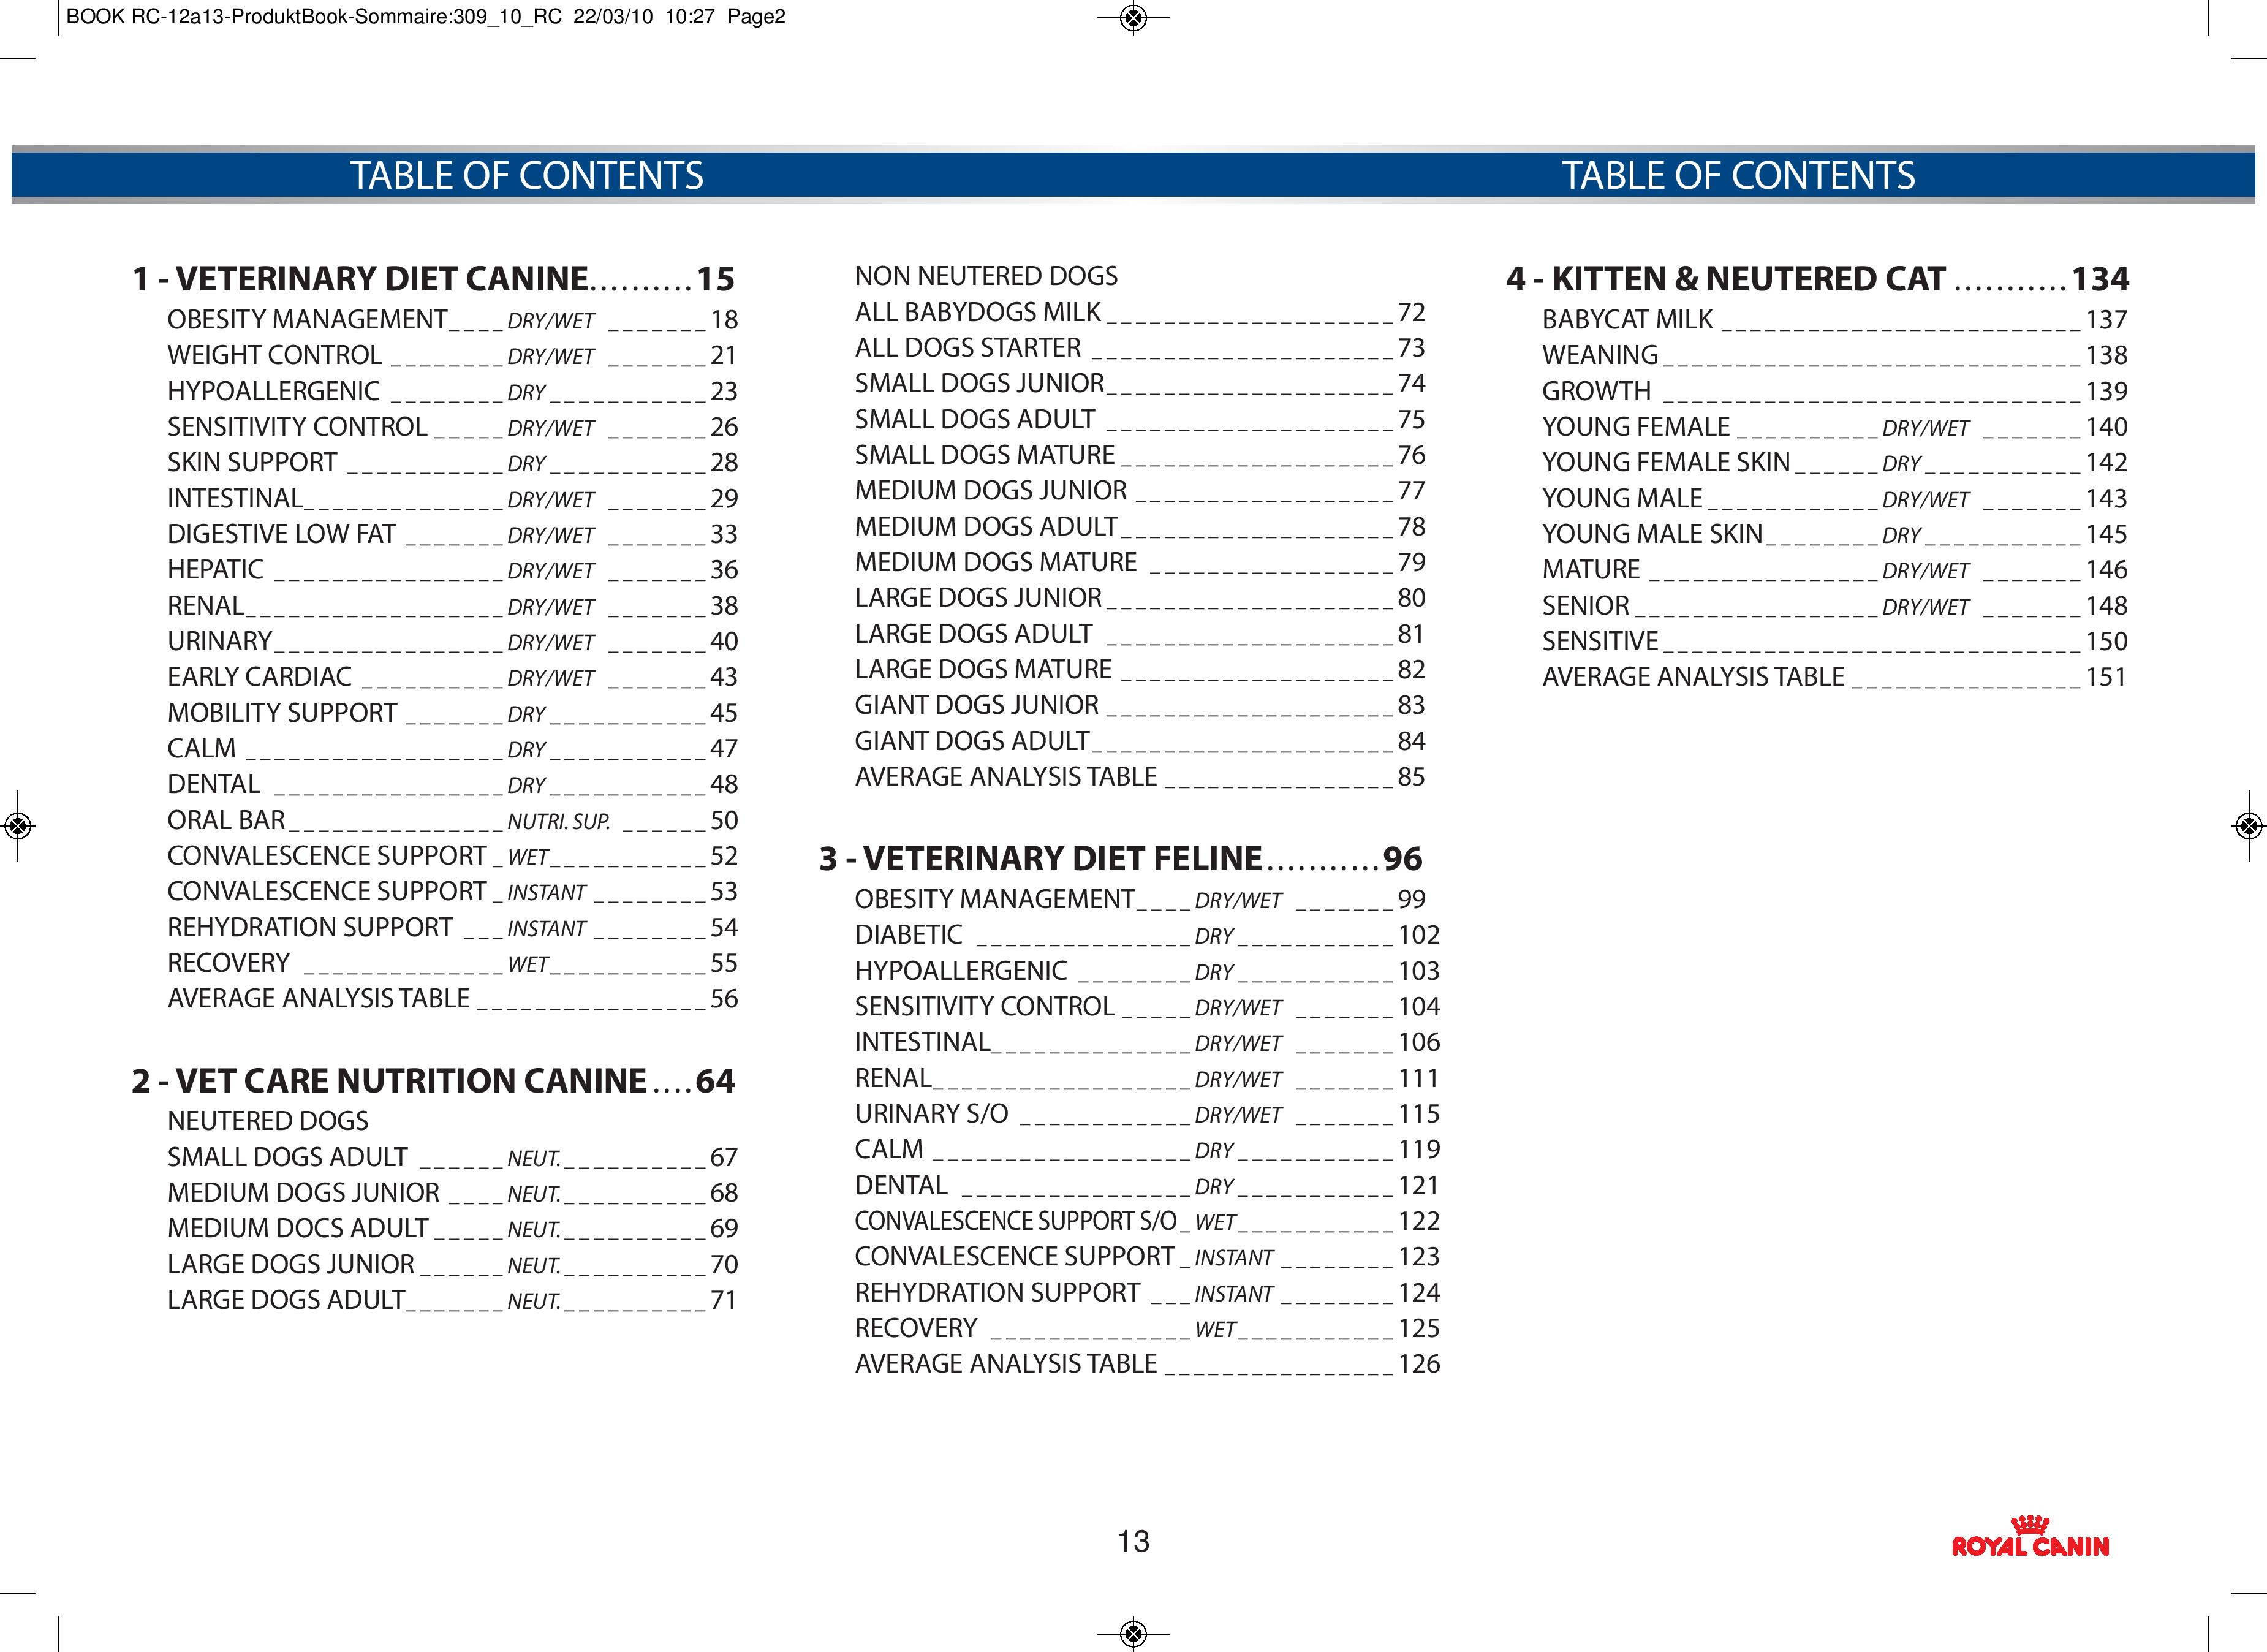 Emirates Animals Export Product Book 2010 BD-page-001 (15)